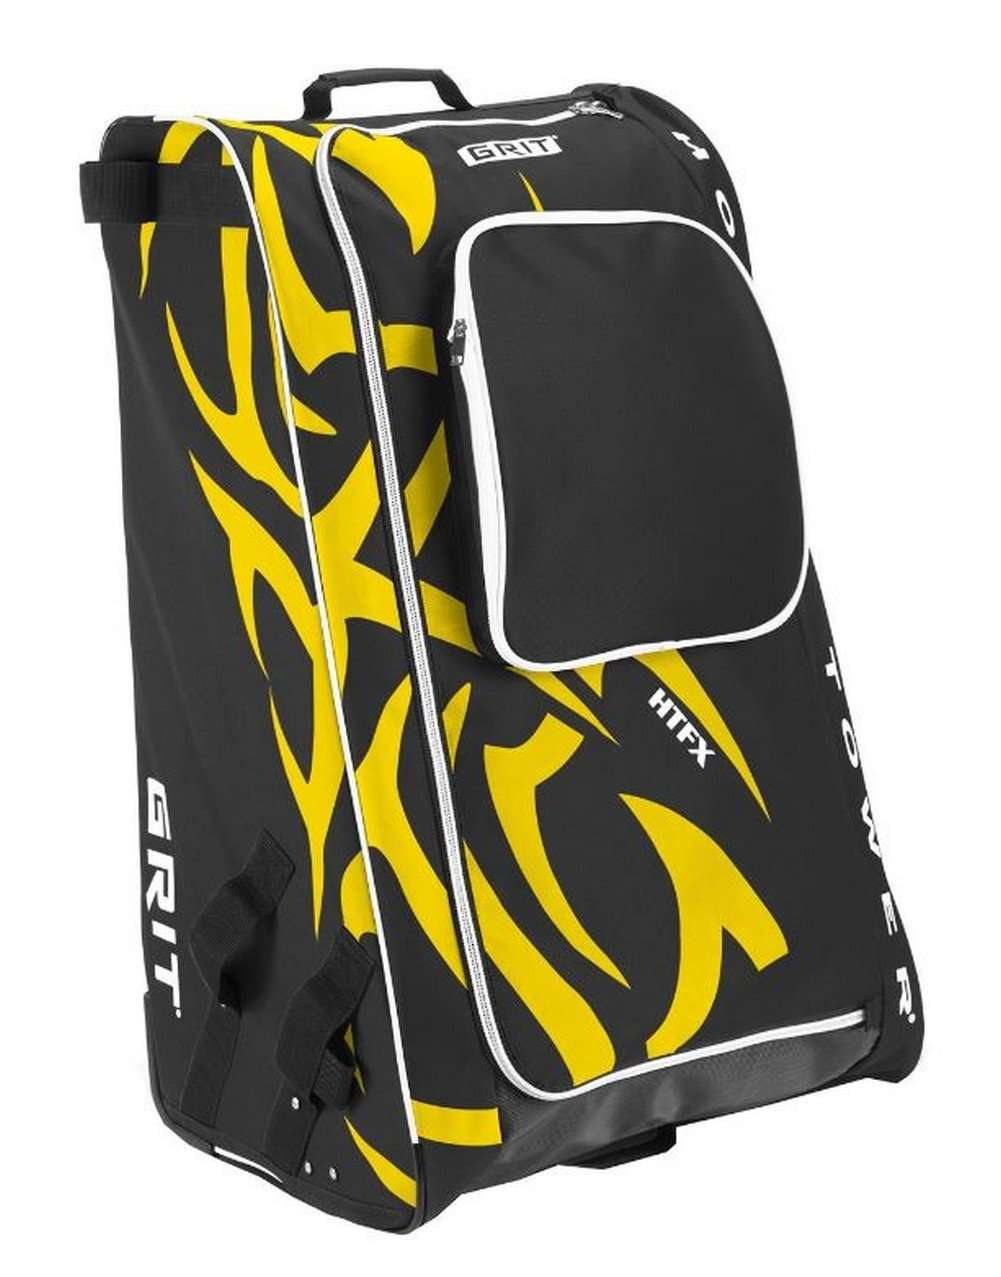 Grit Inc HTFX Hockey Tower 33'' Wheeled Equipment Bag Yellow HTFX033-BO (Boston)